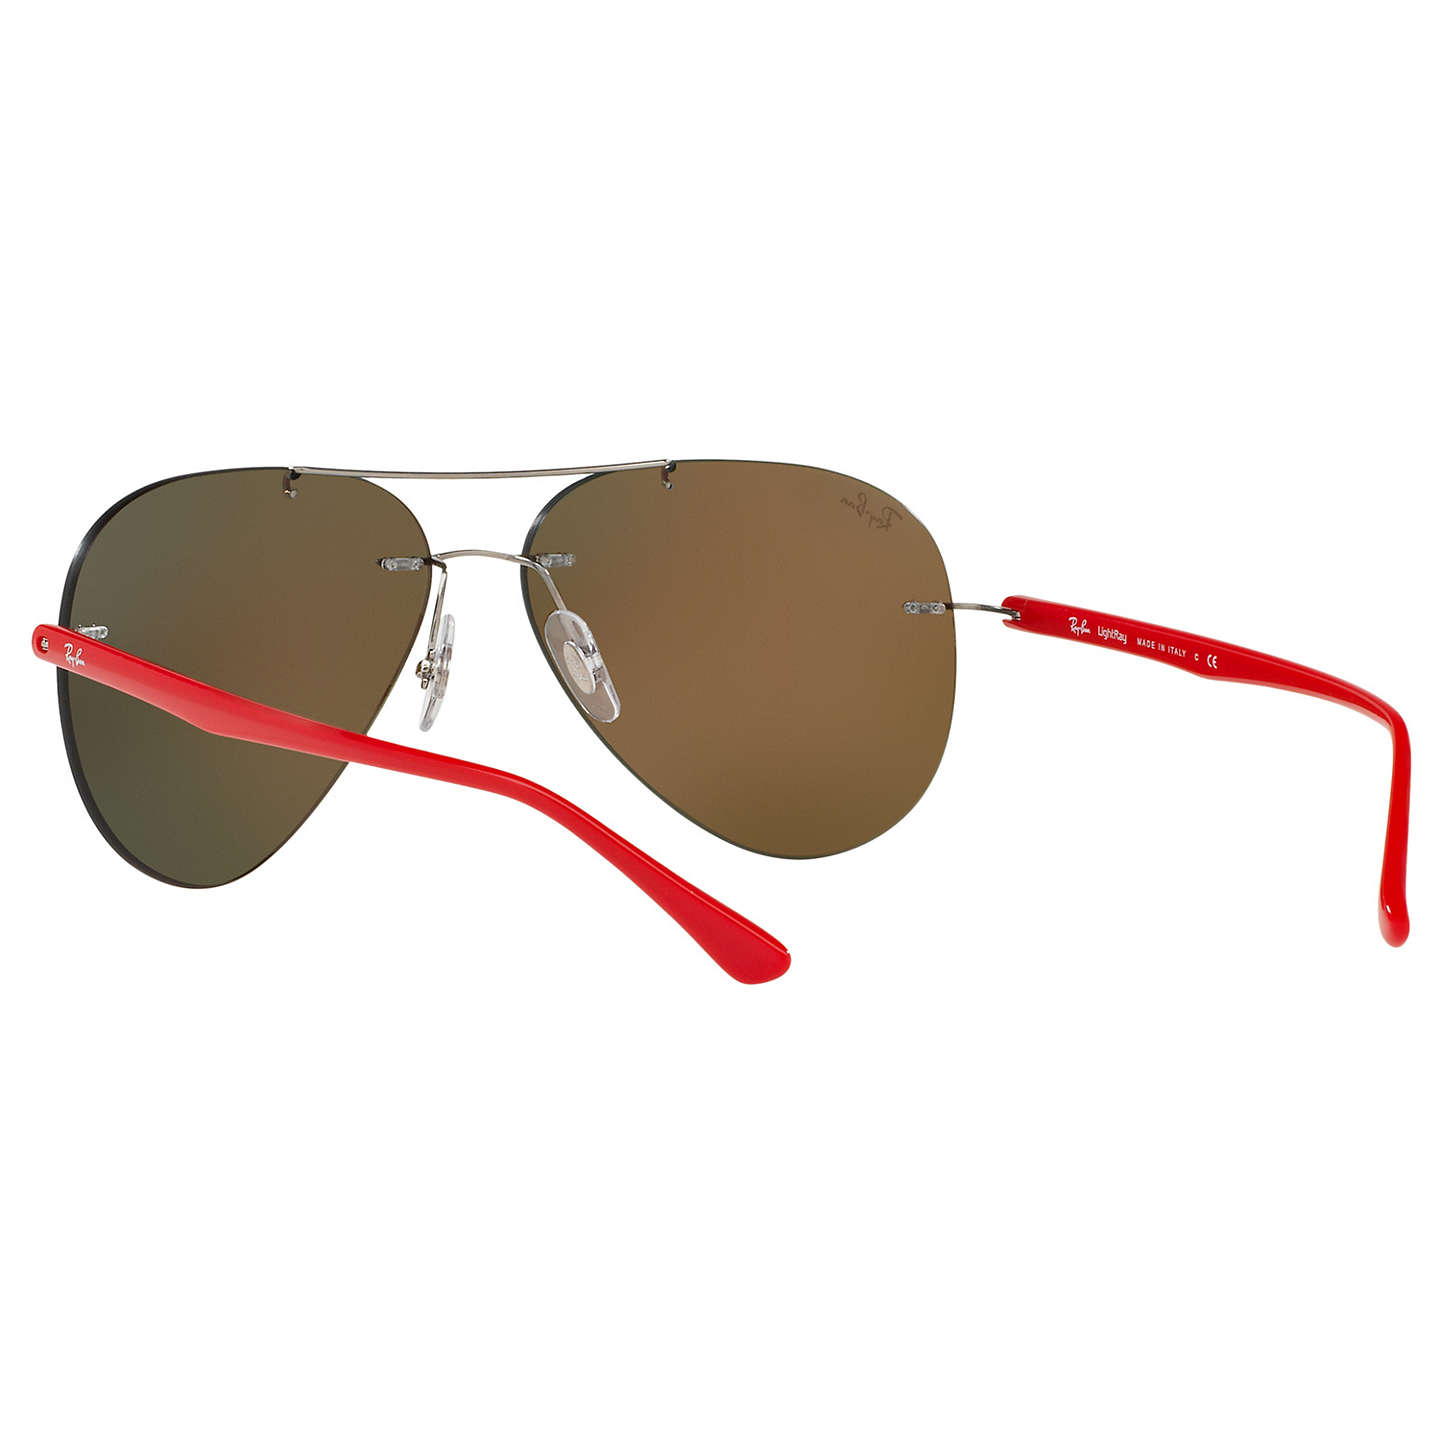 BuyRay-Ban RB8058 Frameless Aviator Sunglasses, Red/Mirror Orange Online at johnlewis.com